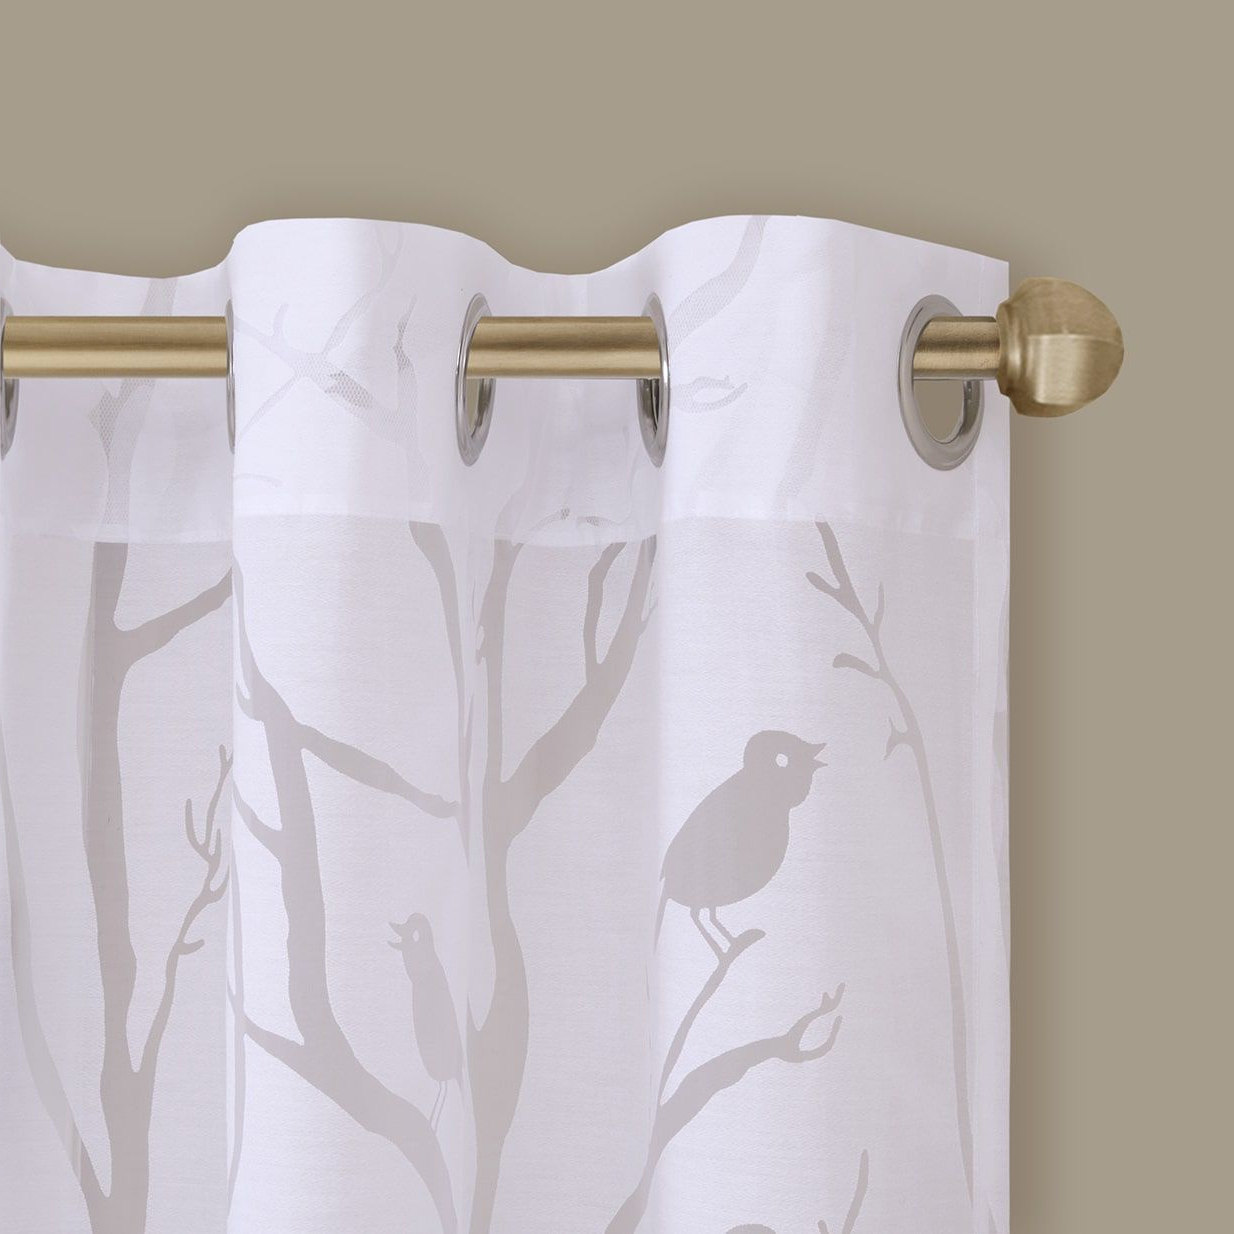 Vina Sheer Bird Single Curtain Panels Intended For Popular Madison Park Vina Sheer Bird Curtain Panel (View 5 of 20)